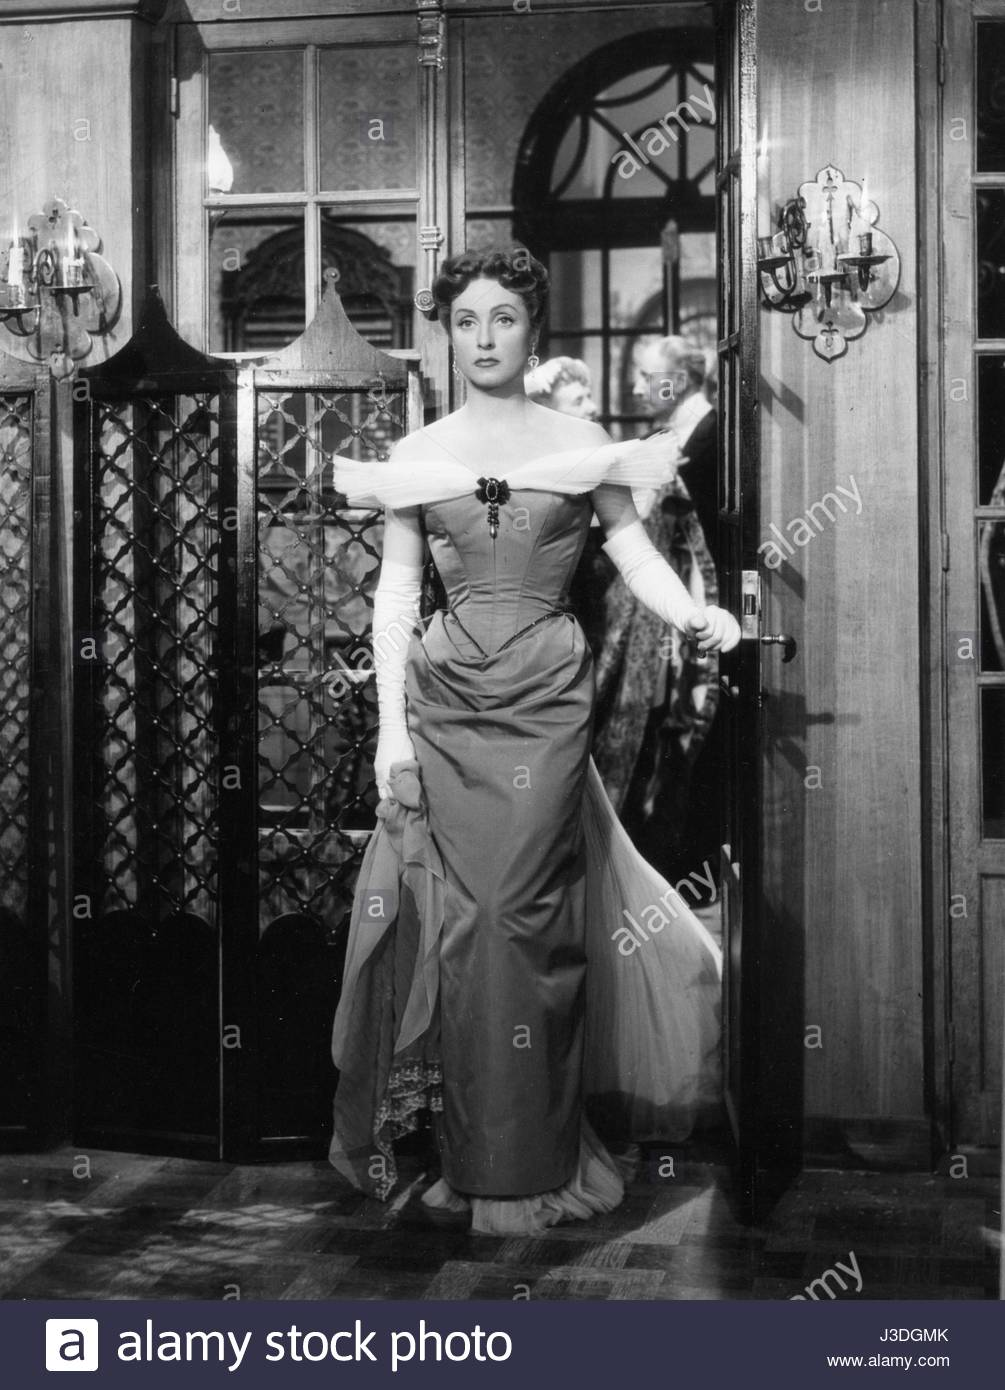 Italy Danielle  Darrieux Director: Max Ophuls